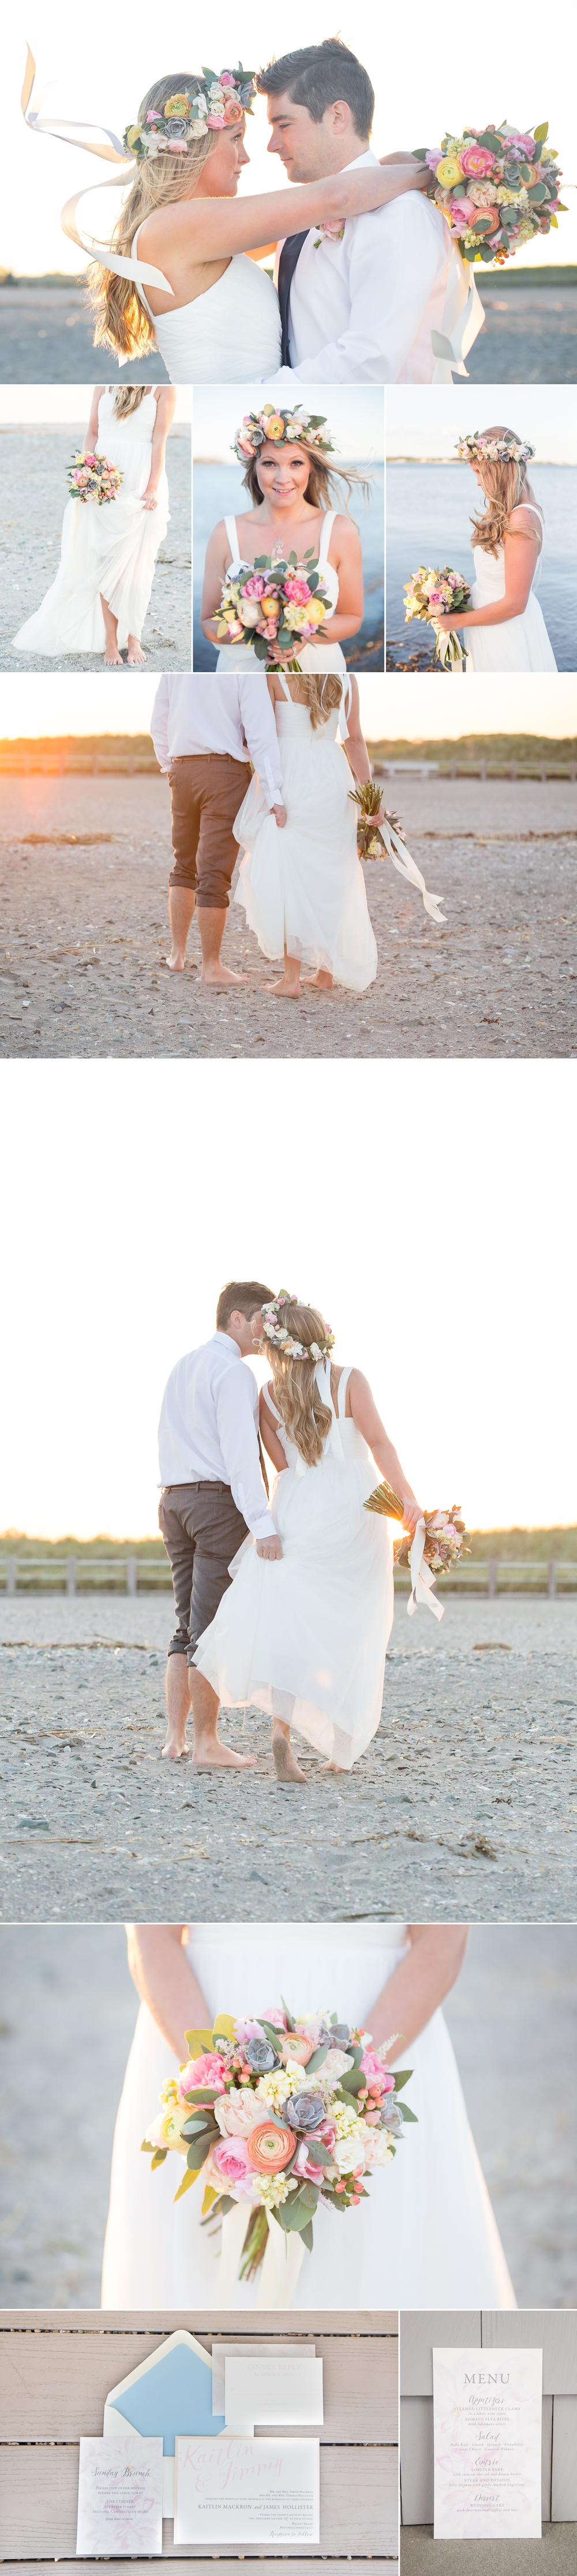 Sunset Beach Wedding Inspiration on Glamour & Grace | Shaina Lee Photography | CT, NYC + Destination Wedding + Engagement Photographer